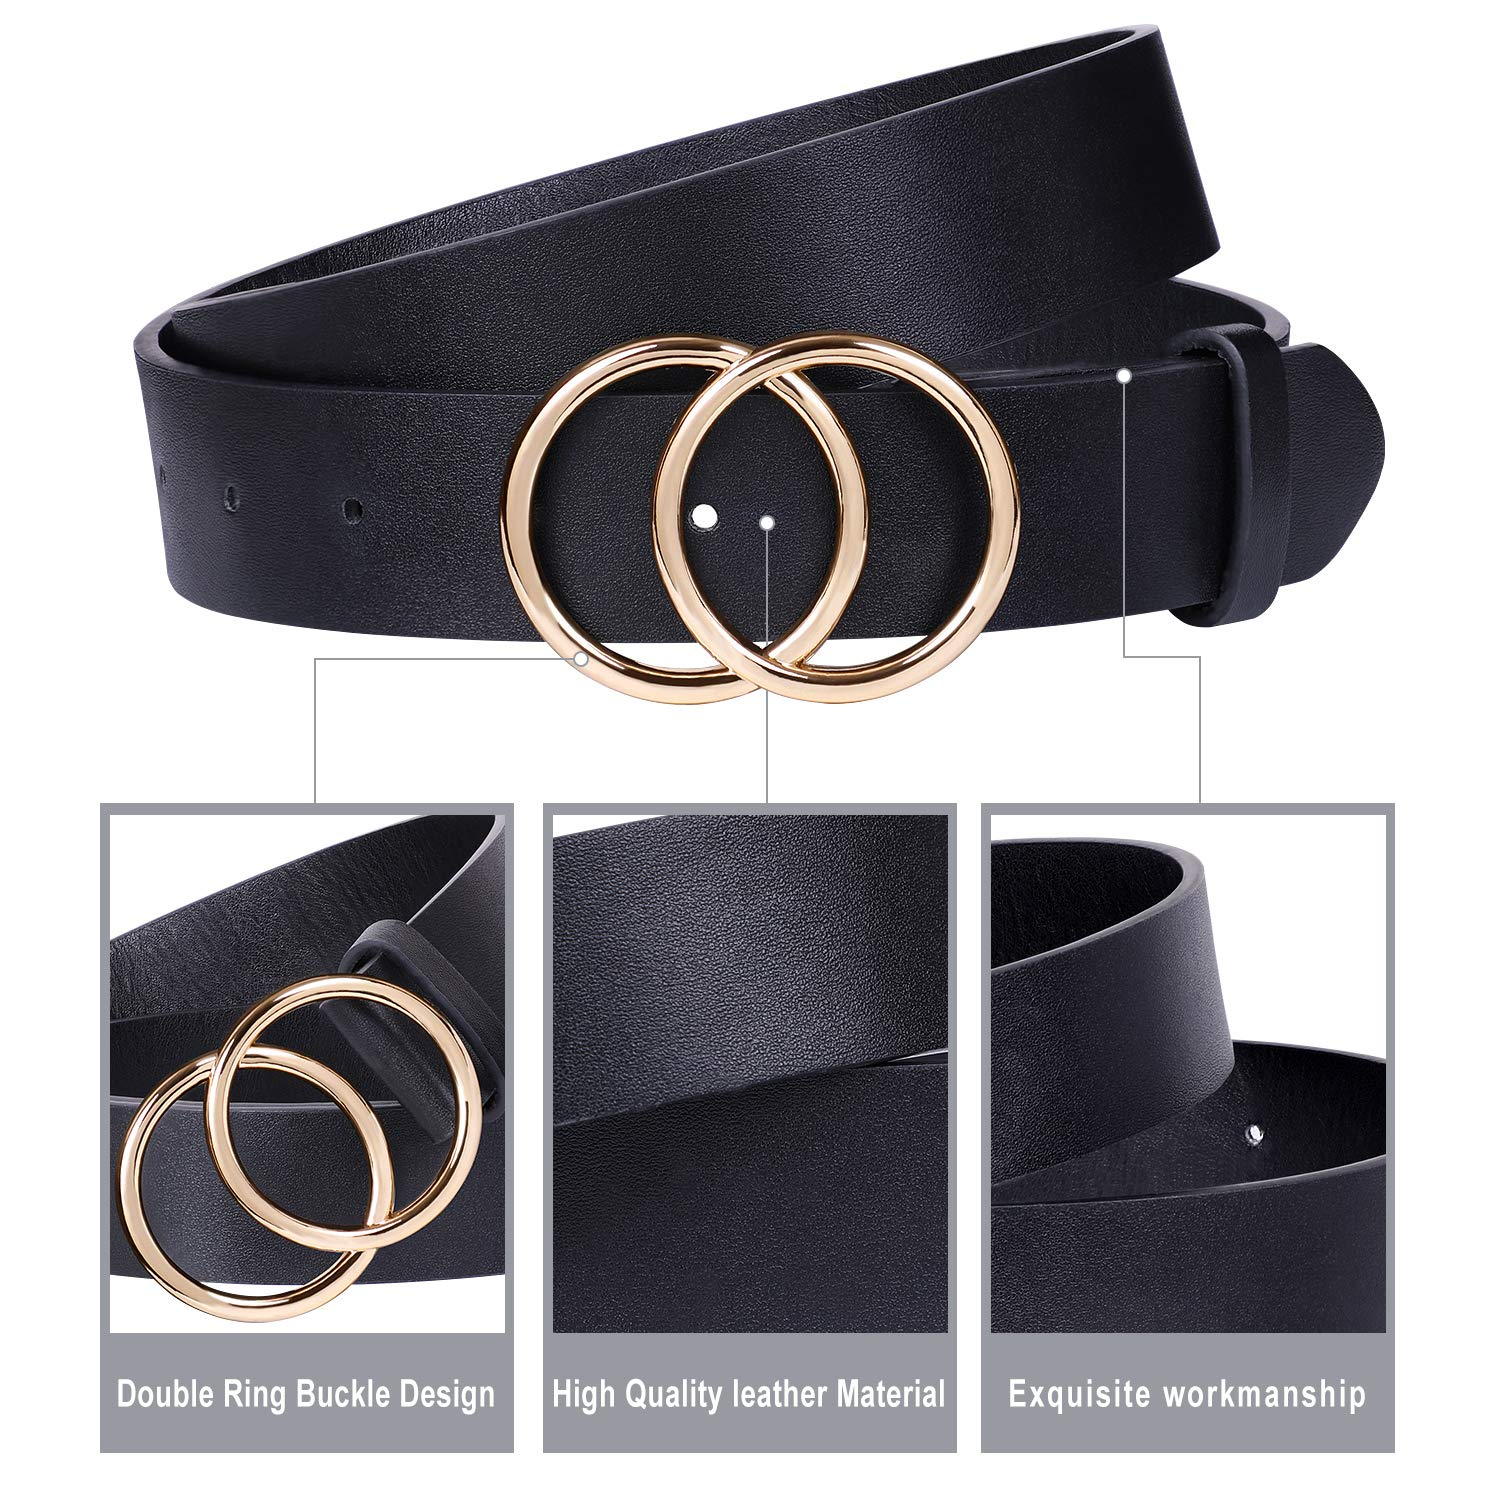 2 Pack Women Leather Belts for Jeans Pants,WERFORU Ladies Plus Size Waist Belts with Double O-Ring Buckle,Suit for Pants Size 26-30 Inches,Black+Leopard